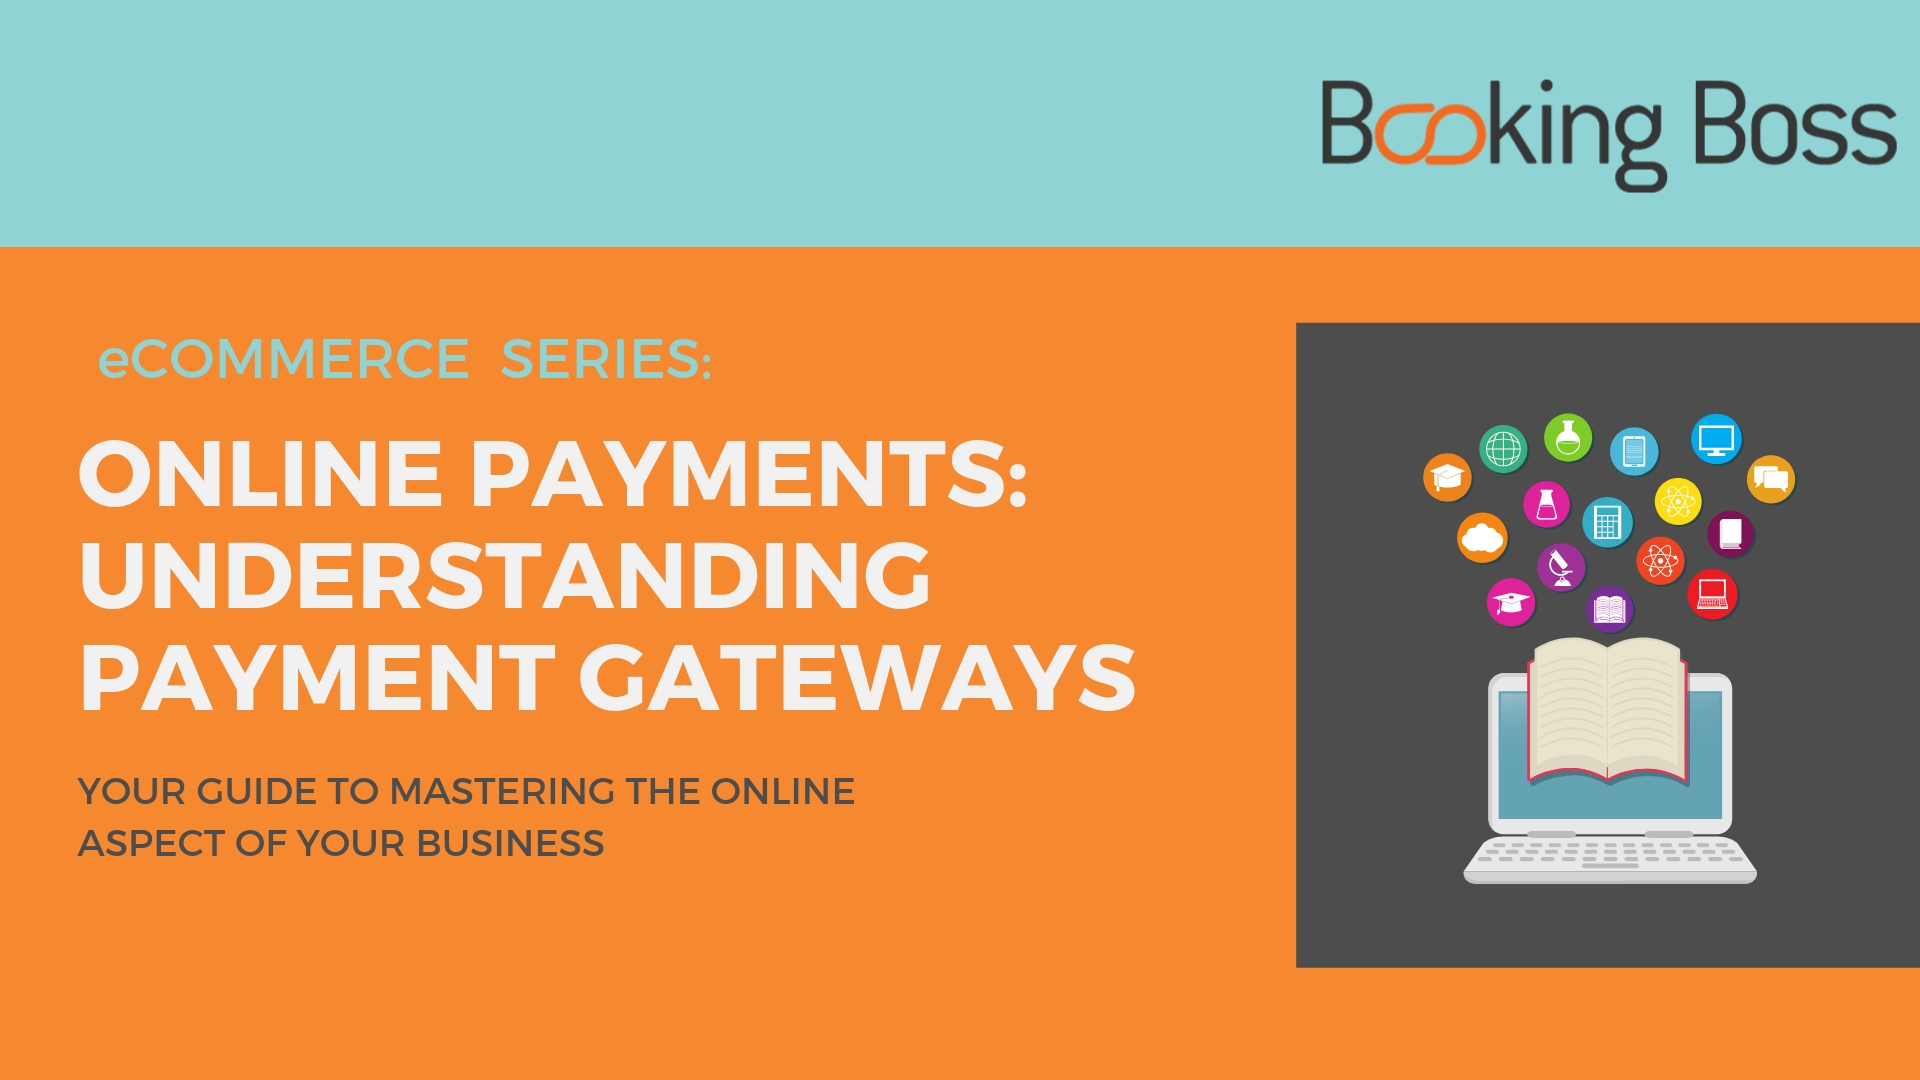 Understanding Payment Gateways for Tours and Activity Businesses